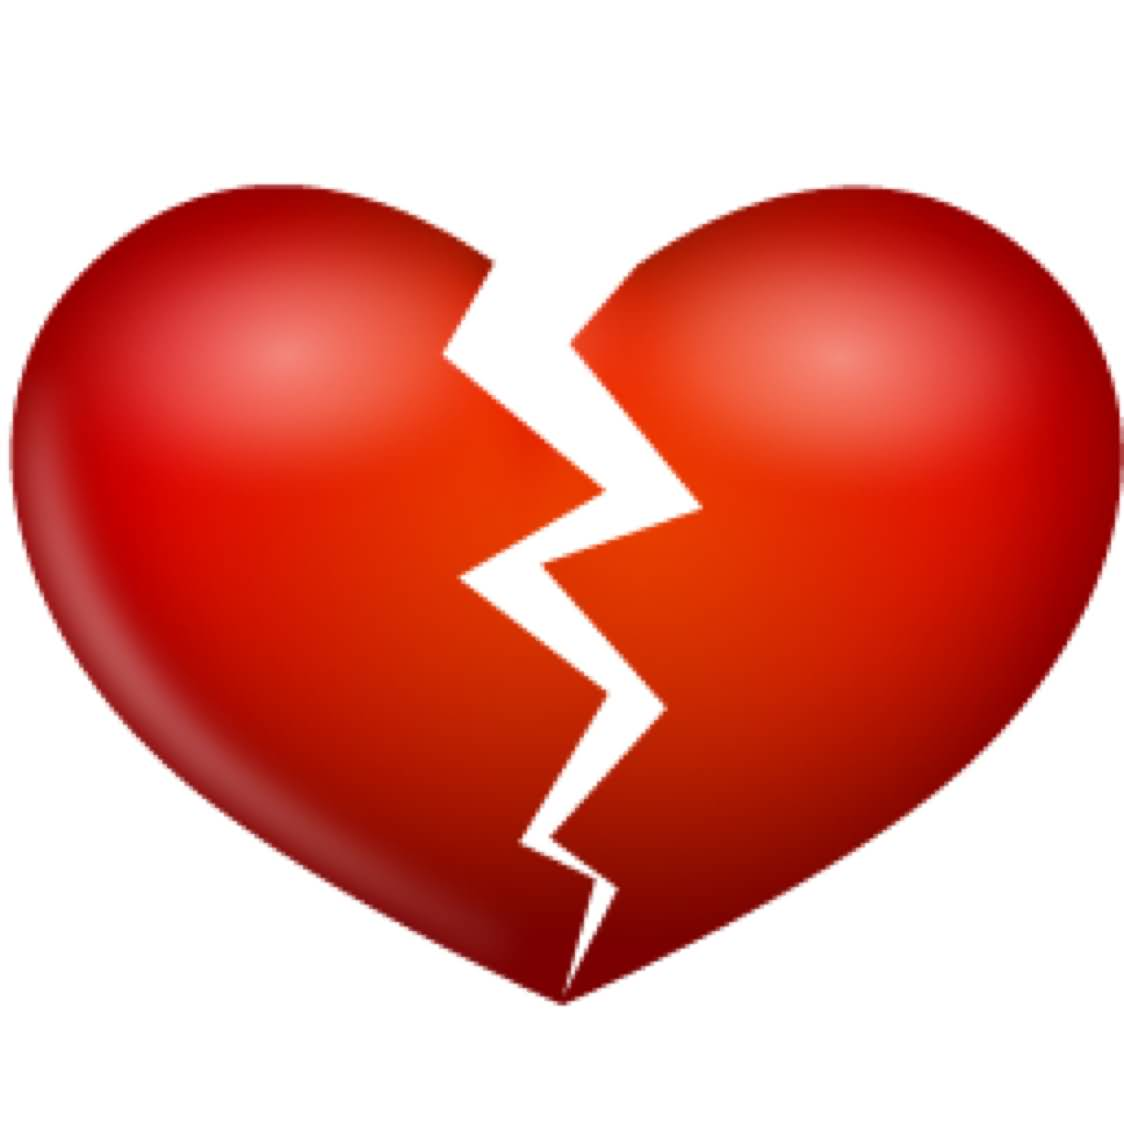 27 latest heart broken pictures clip art broken heart person clip art broken heart